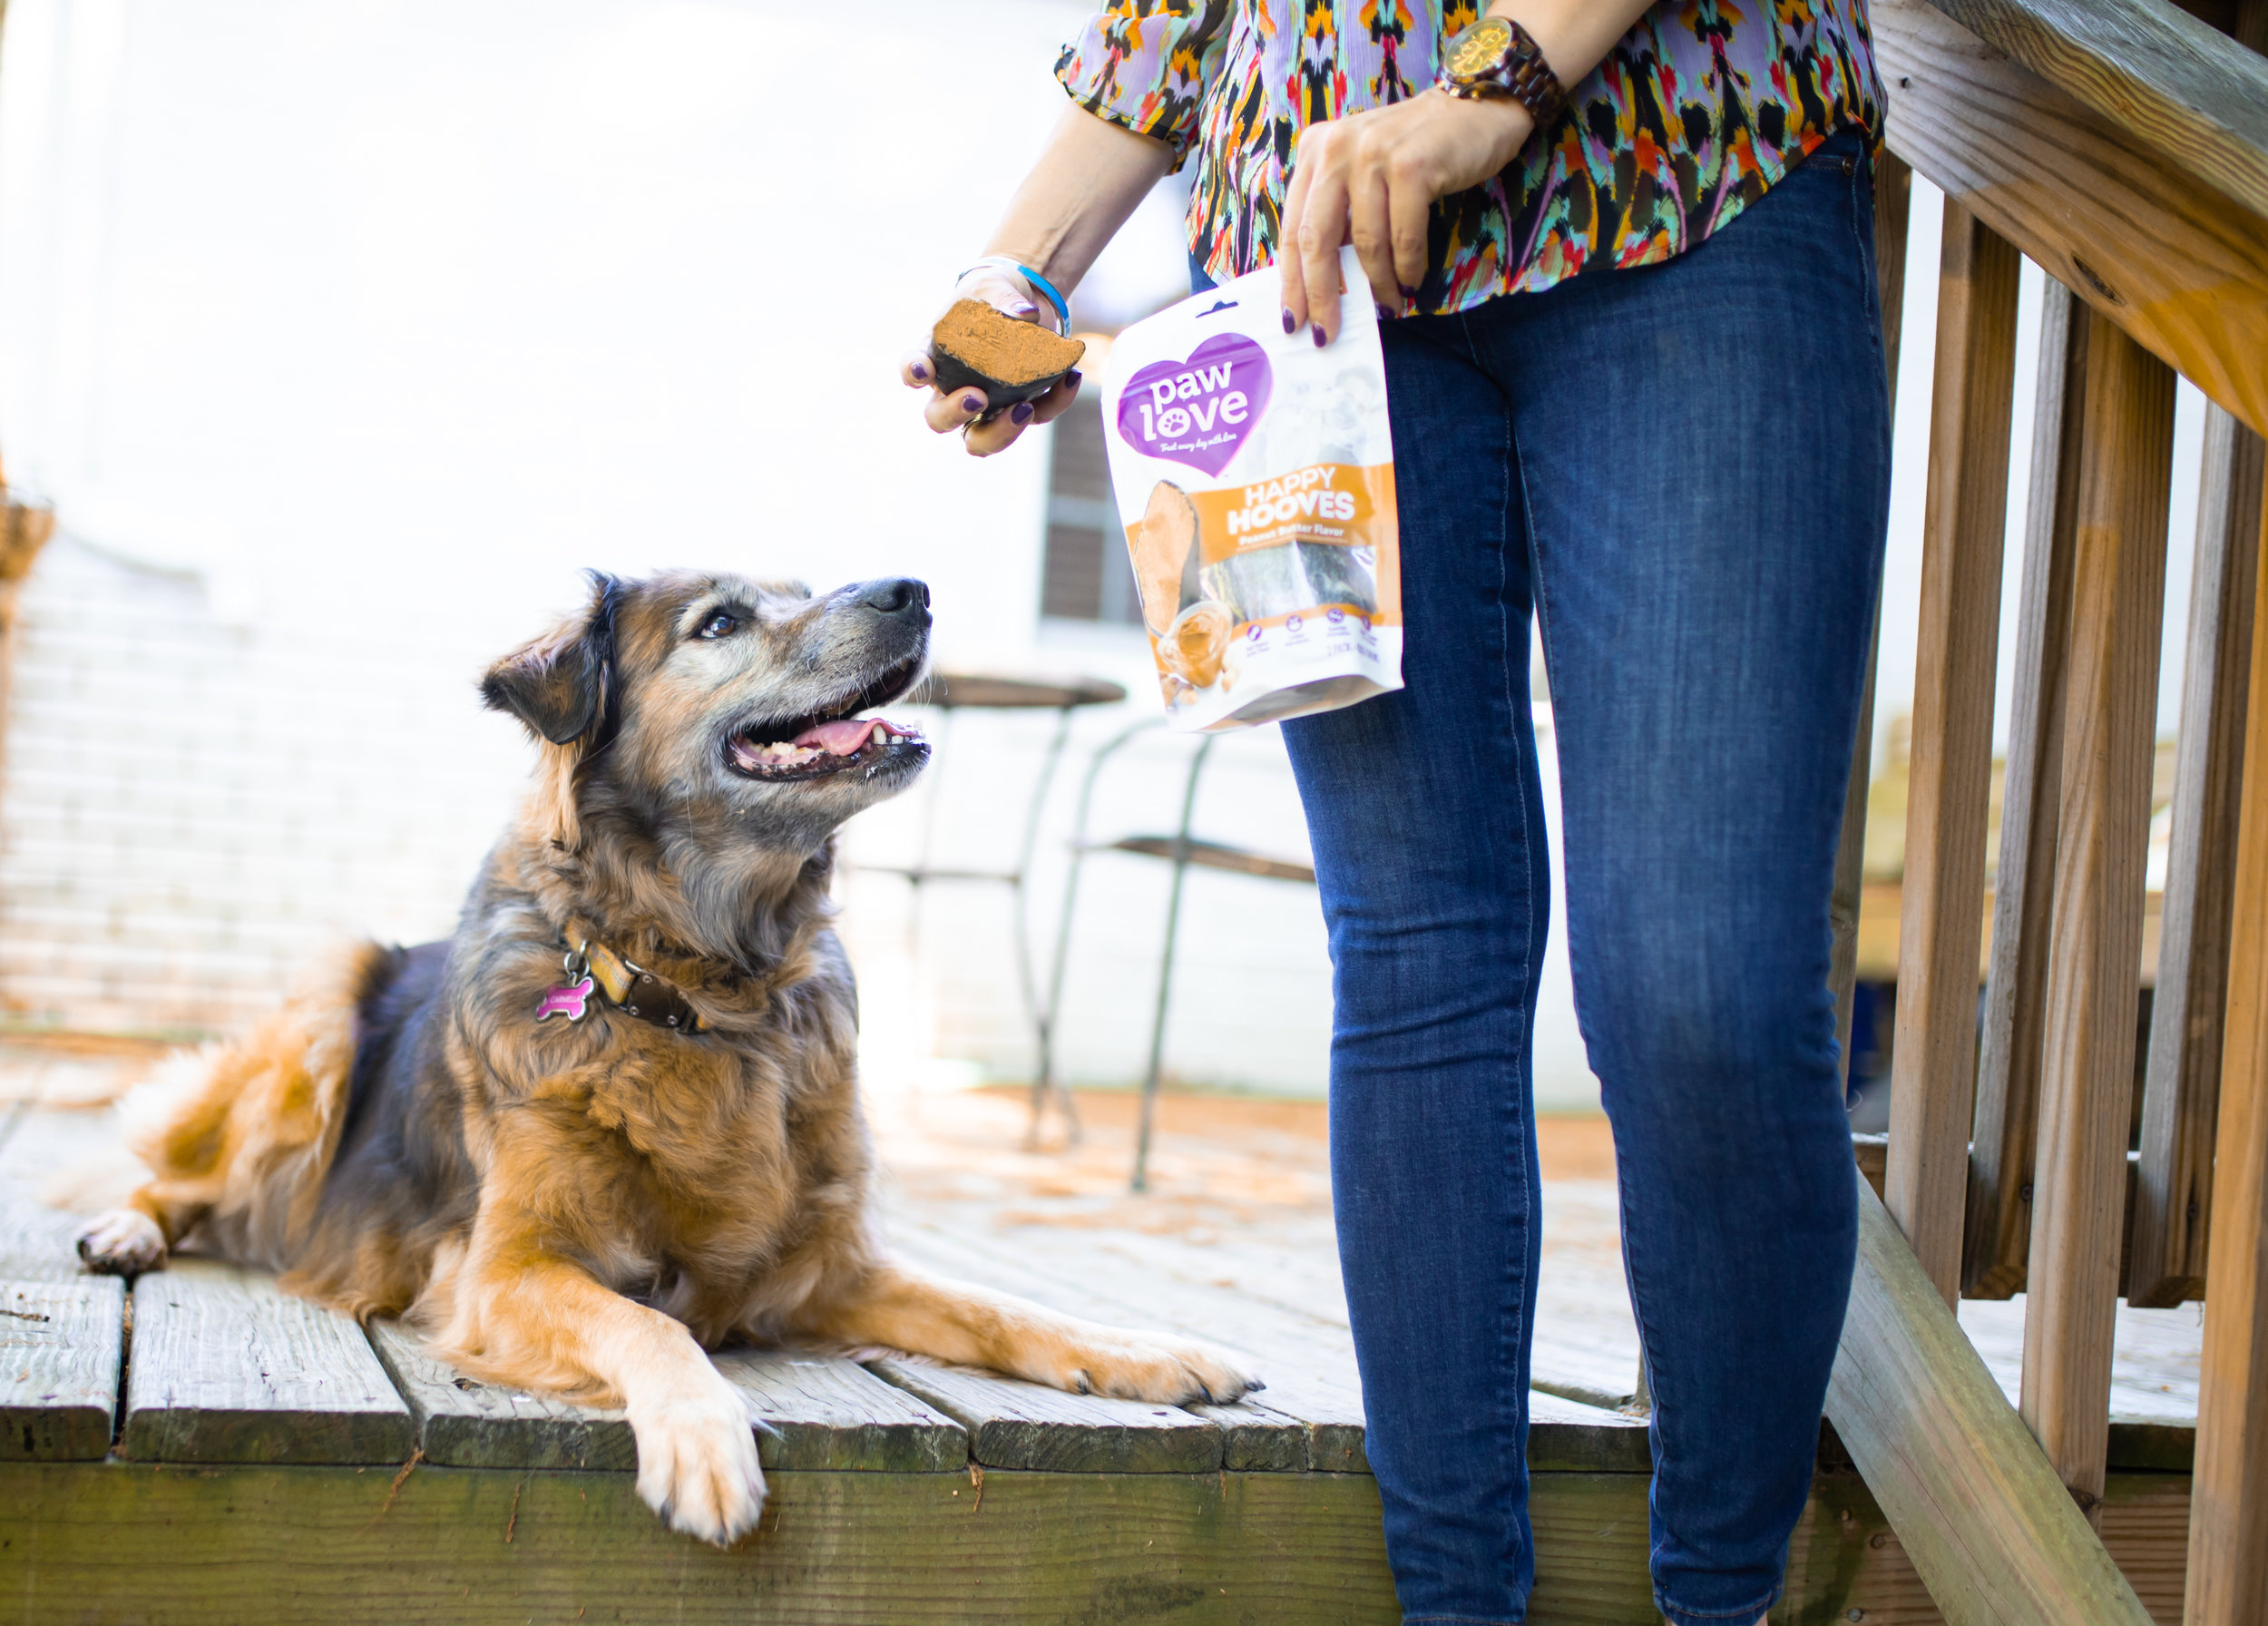 creamy peanut butter flavor that dogs can never get enough of -